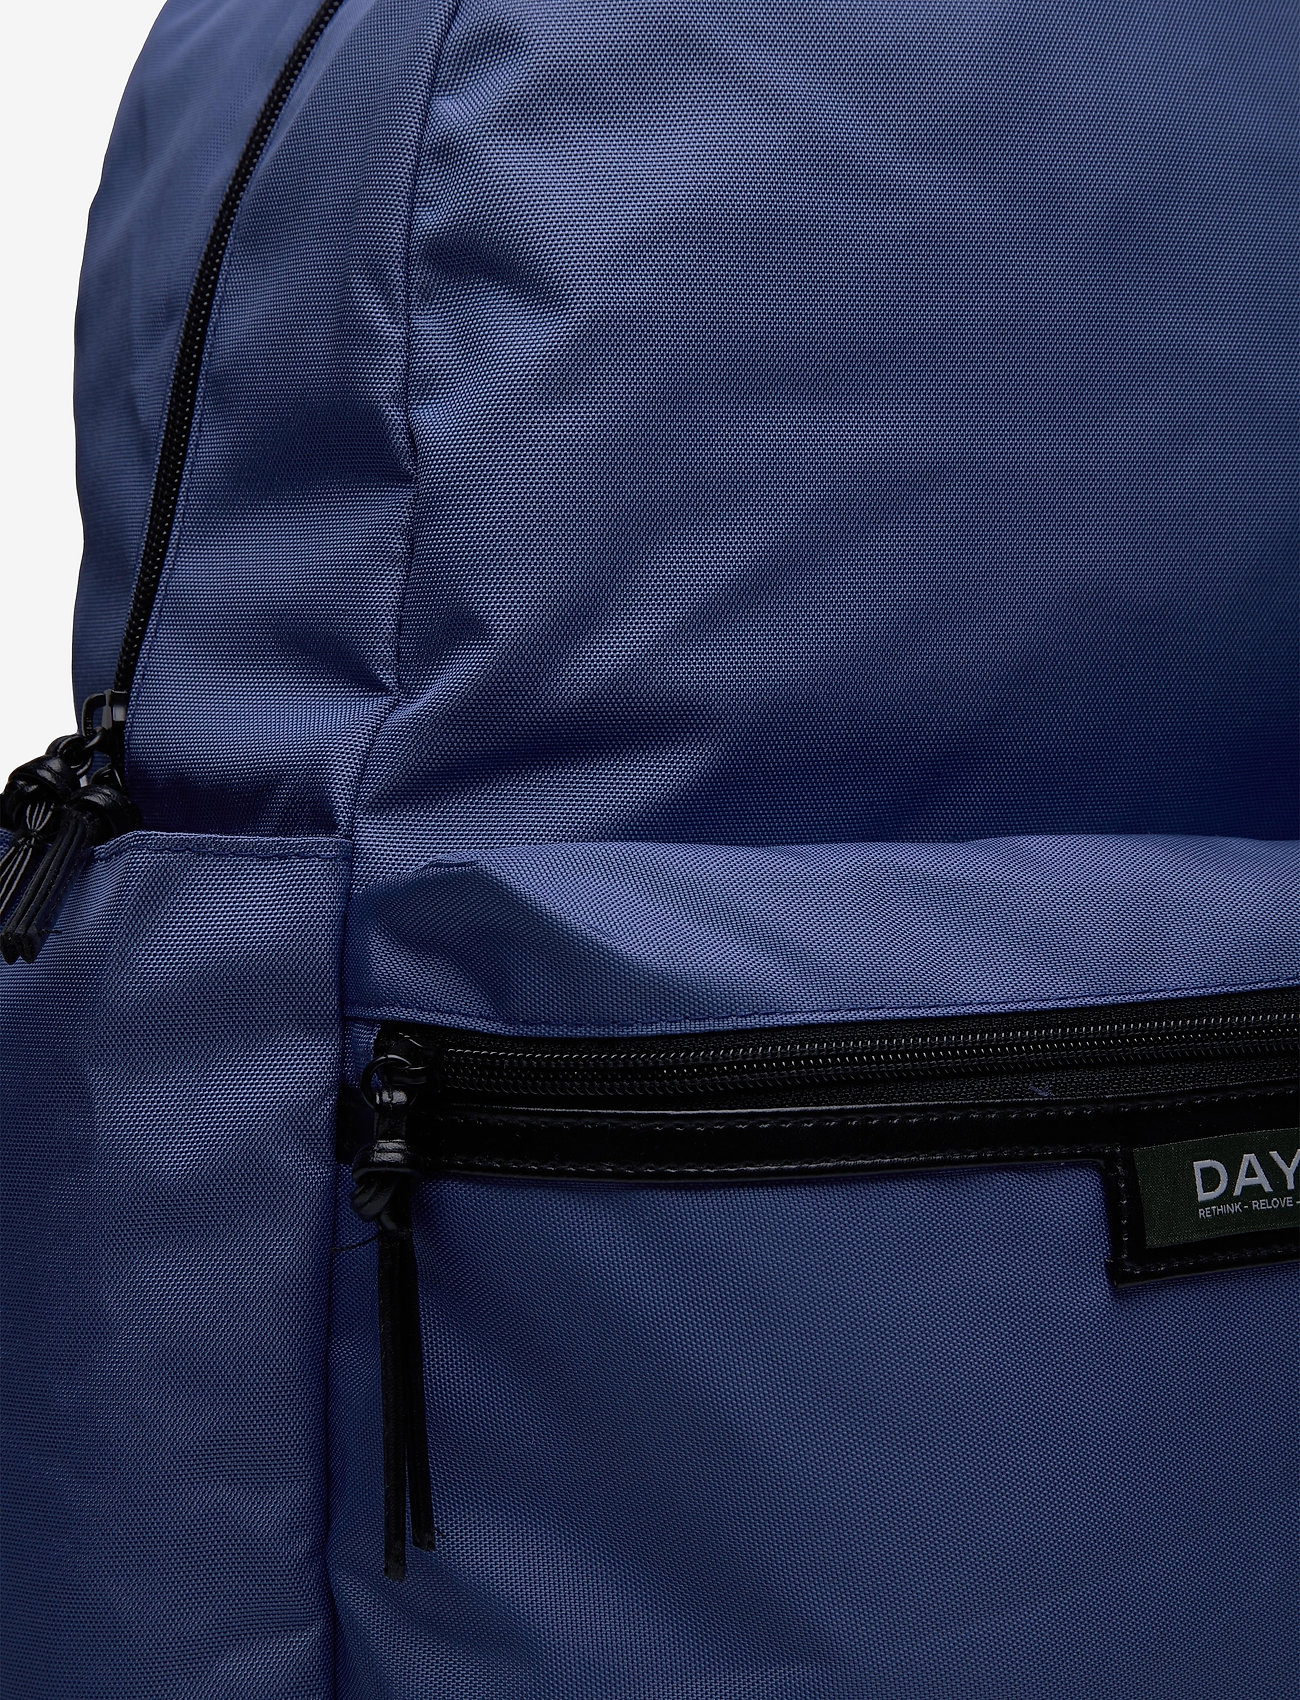 DAY et - Day Gweneth RE-S BP B - bags - federal blue - 3